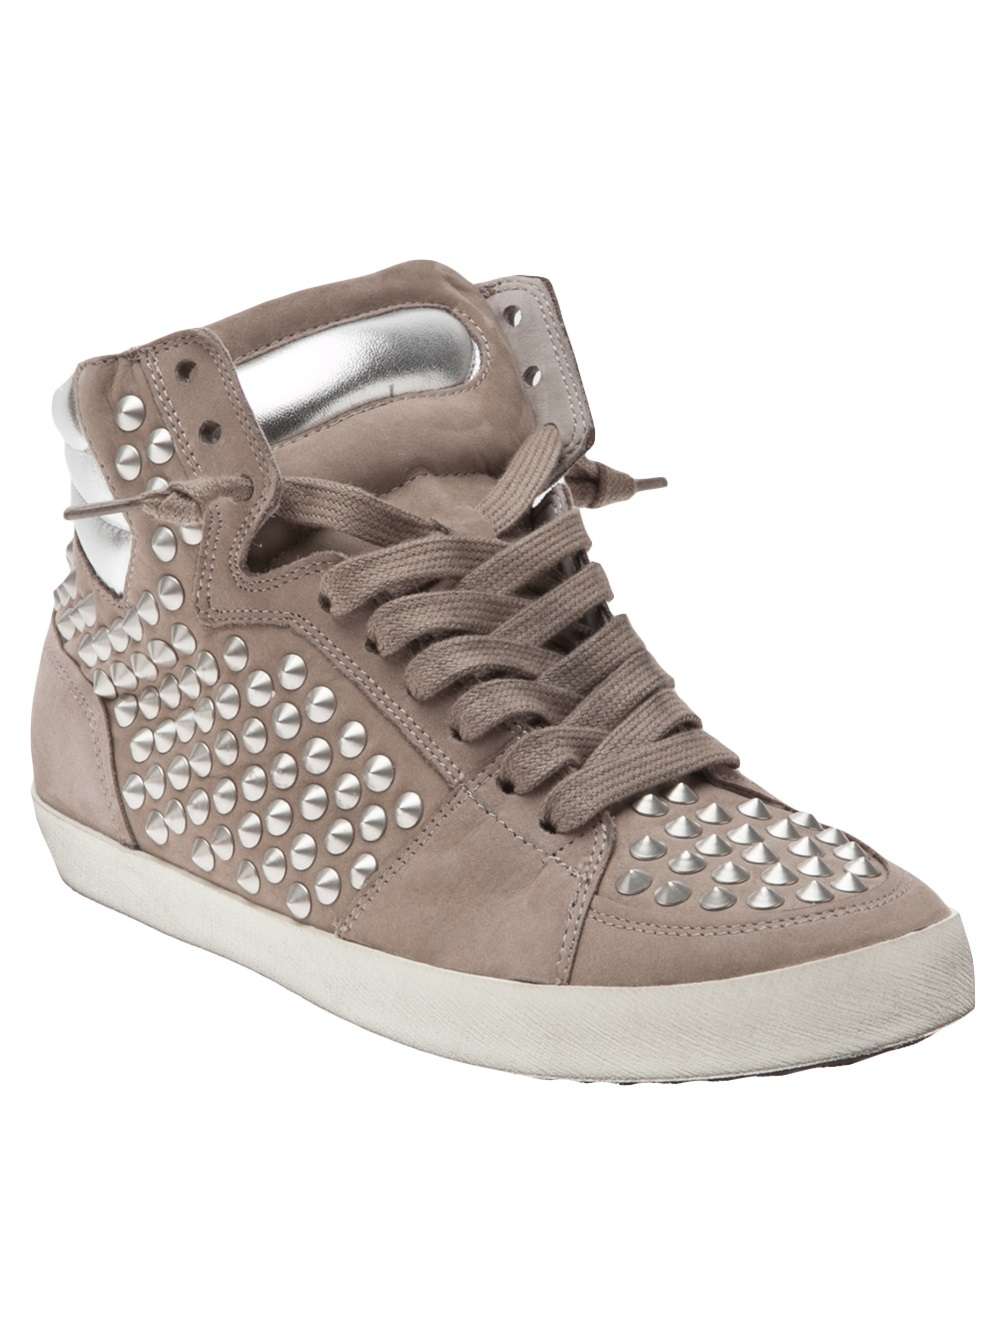 kennel schmenger metro leather sneakers in gray lyst. Black Bedroom Furniture Sets. Home Design Ideas